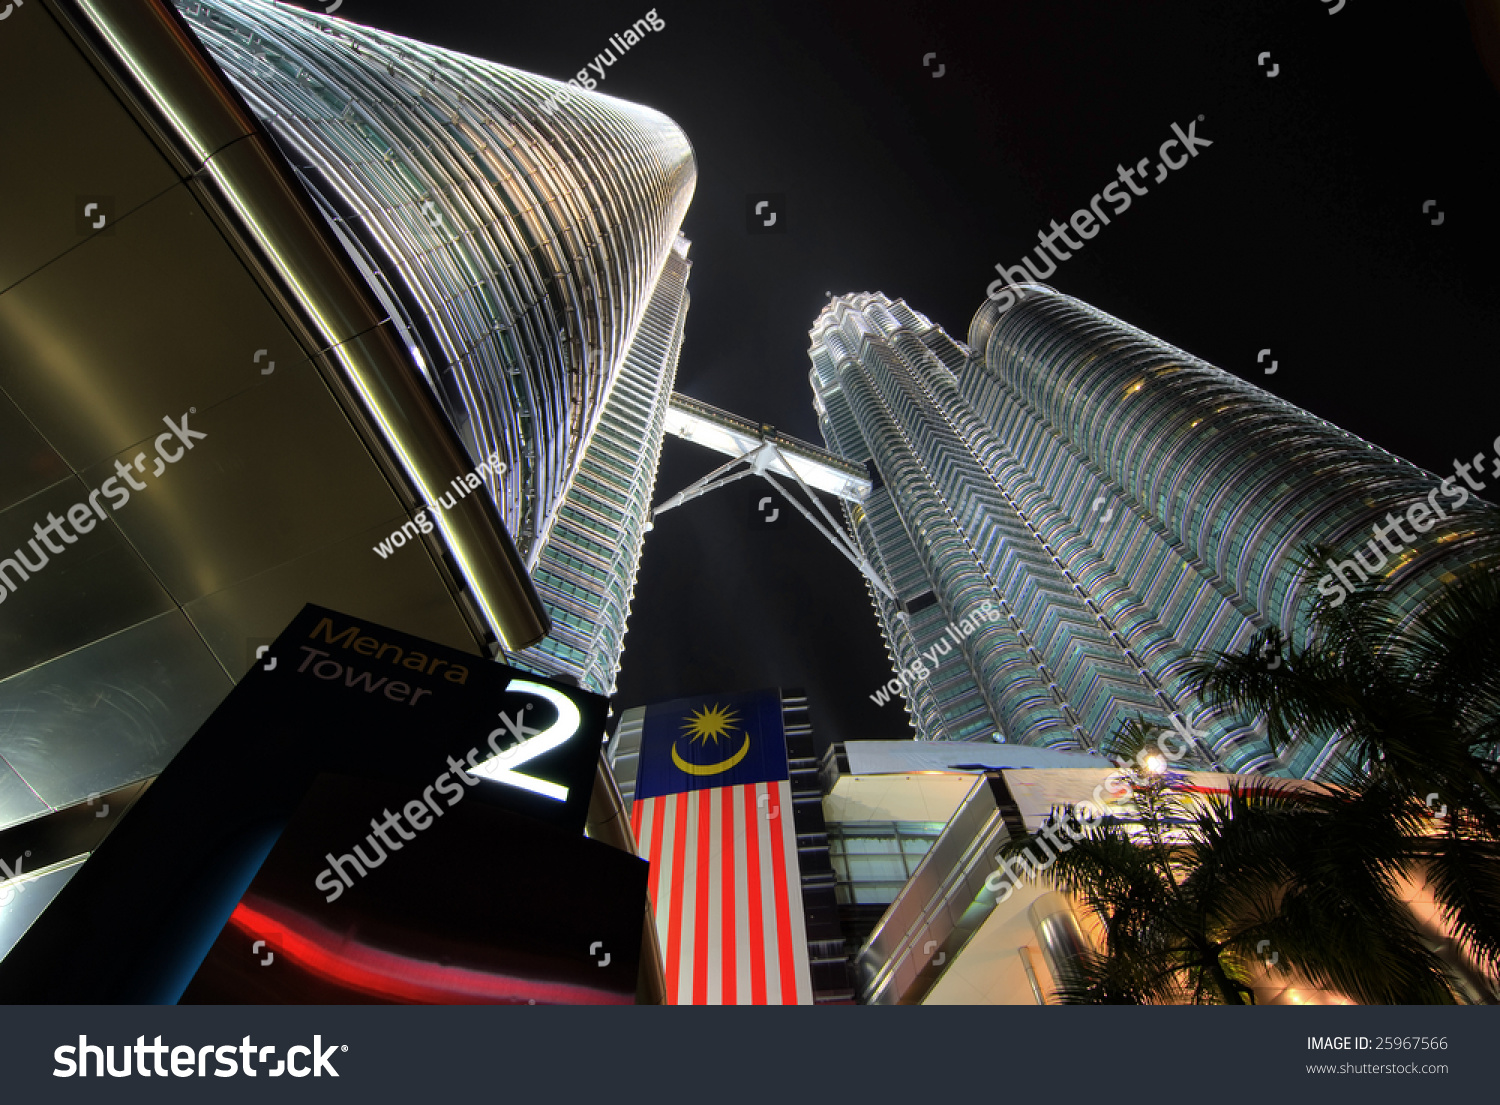 Abstract Shot Tower 2 Klcc Building Malaysia Stock Photo